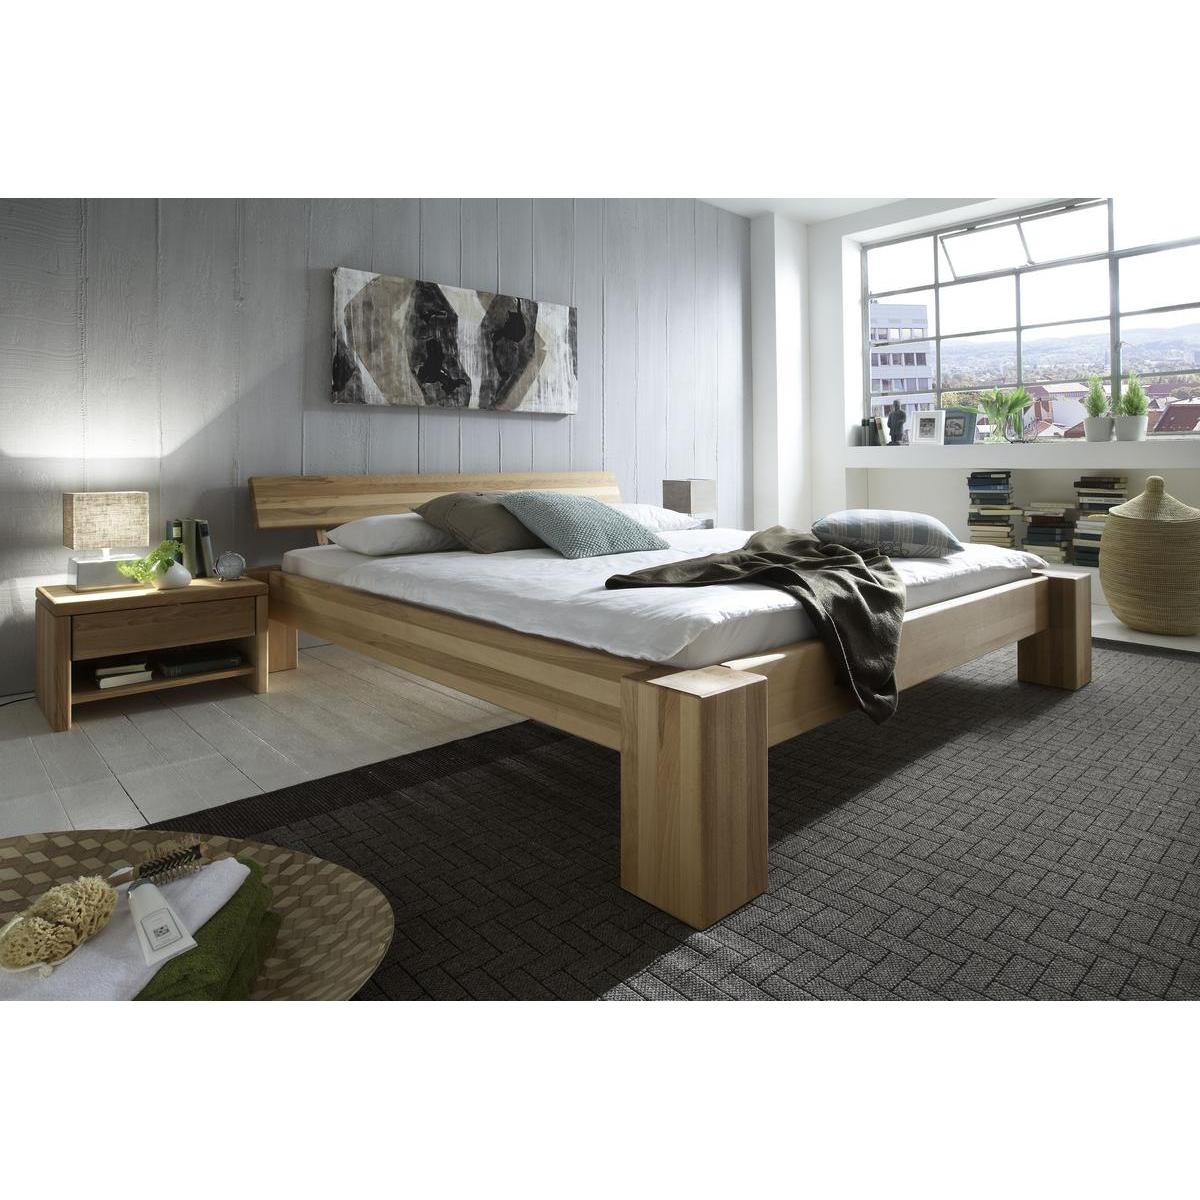 massivholz bett 200x200 xl easy sleep kernbuche massiv. Black Bedroom Furniture Sets. Home Design Ideas